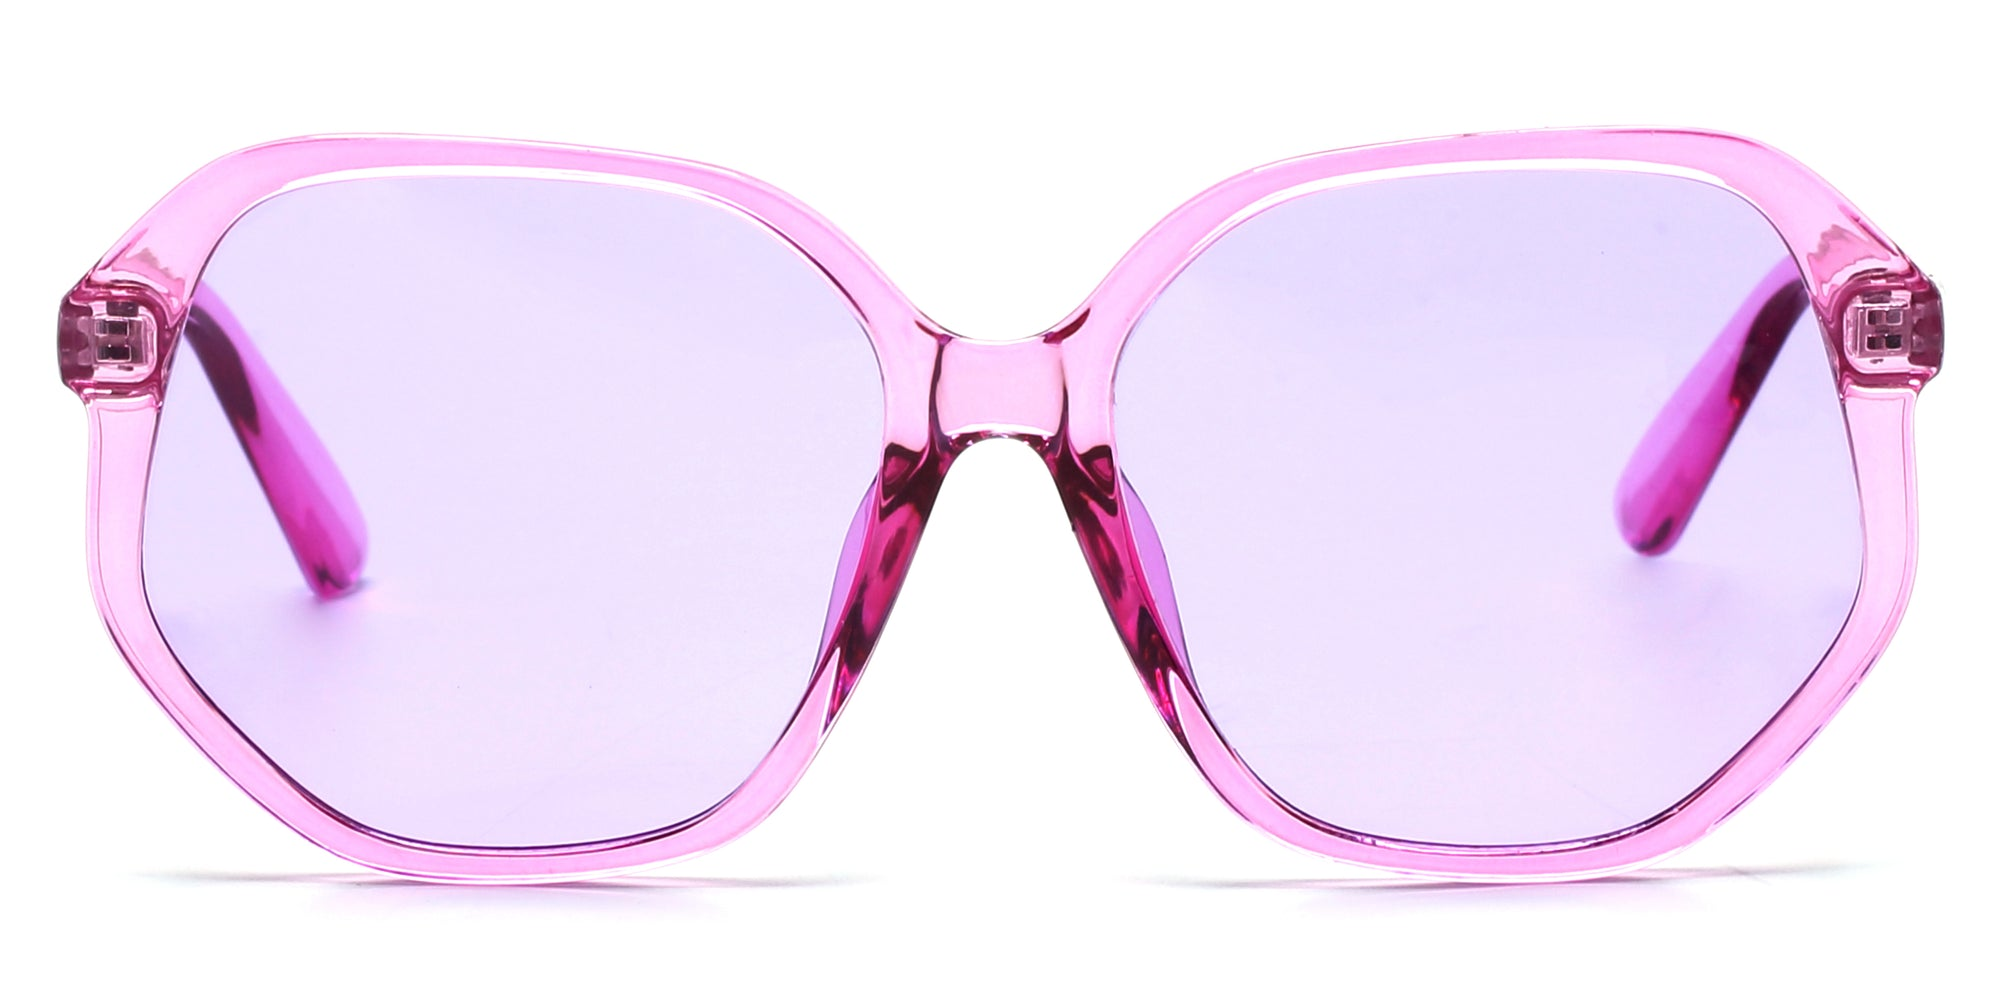 S1108 - Women Geometric Round Oversized Fashion Sunglasses - Wholesale Sunglasses and glasses